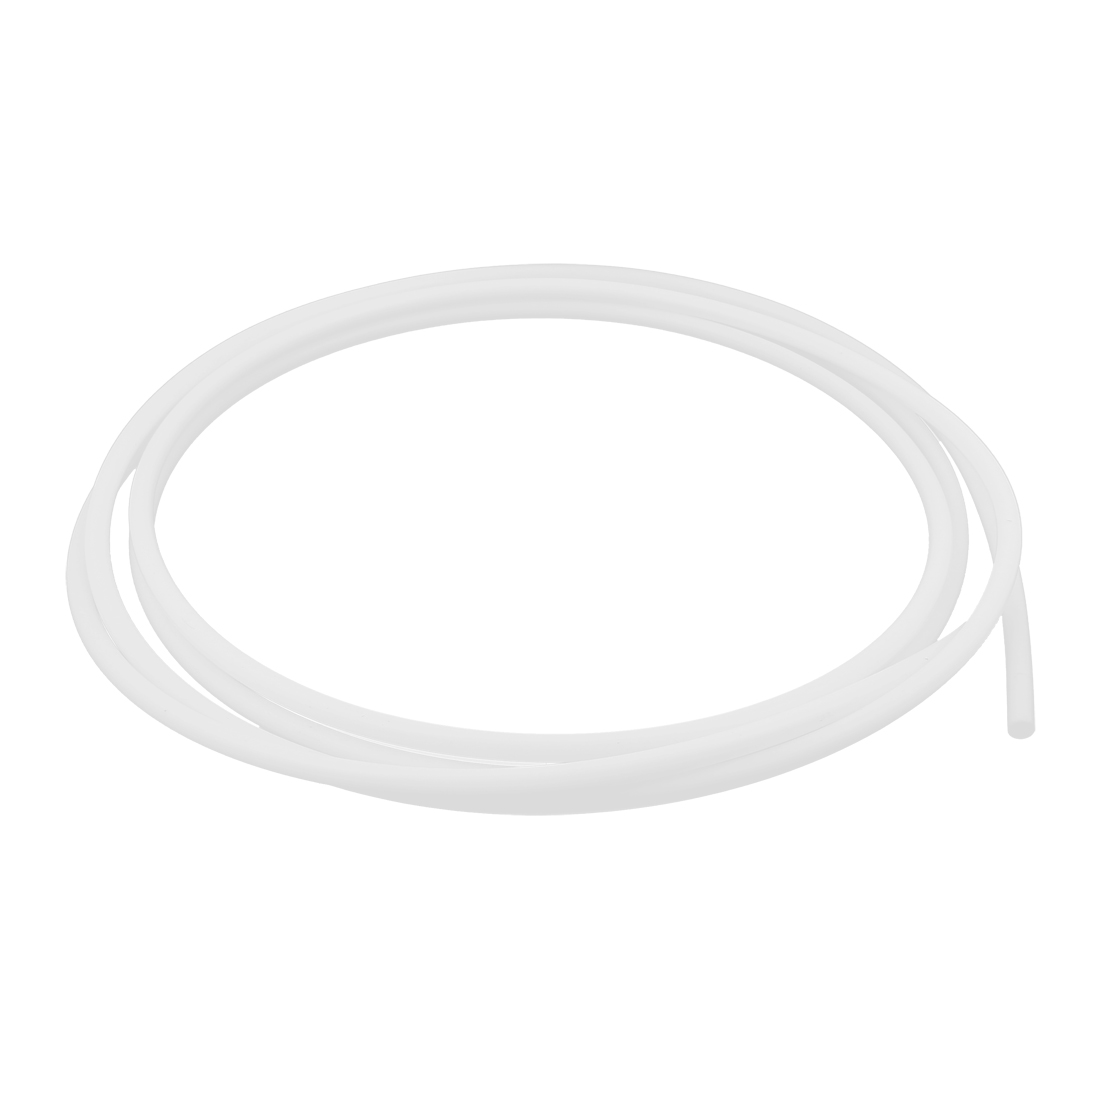 5M Length 10mm ID 12mm OD PTFE Tubing Tube Pipe for 3D Printer RepRap